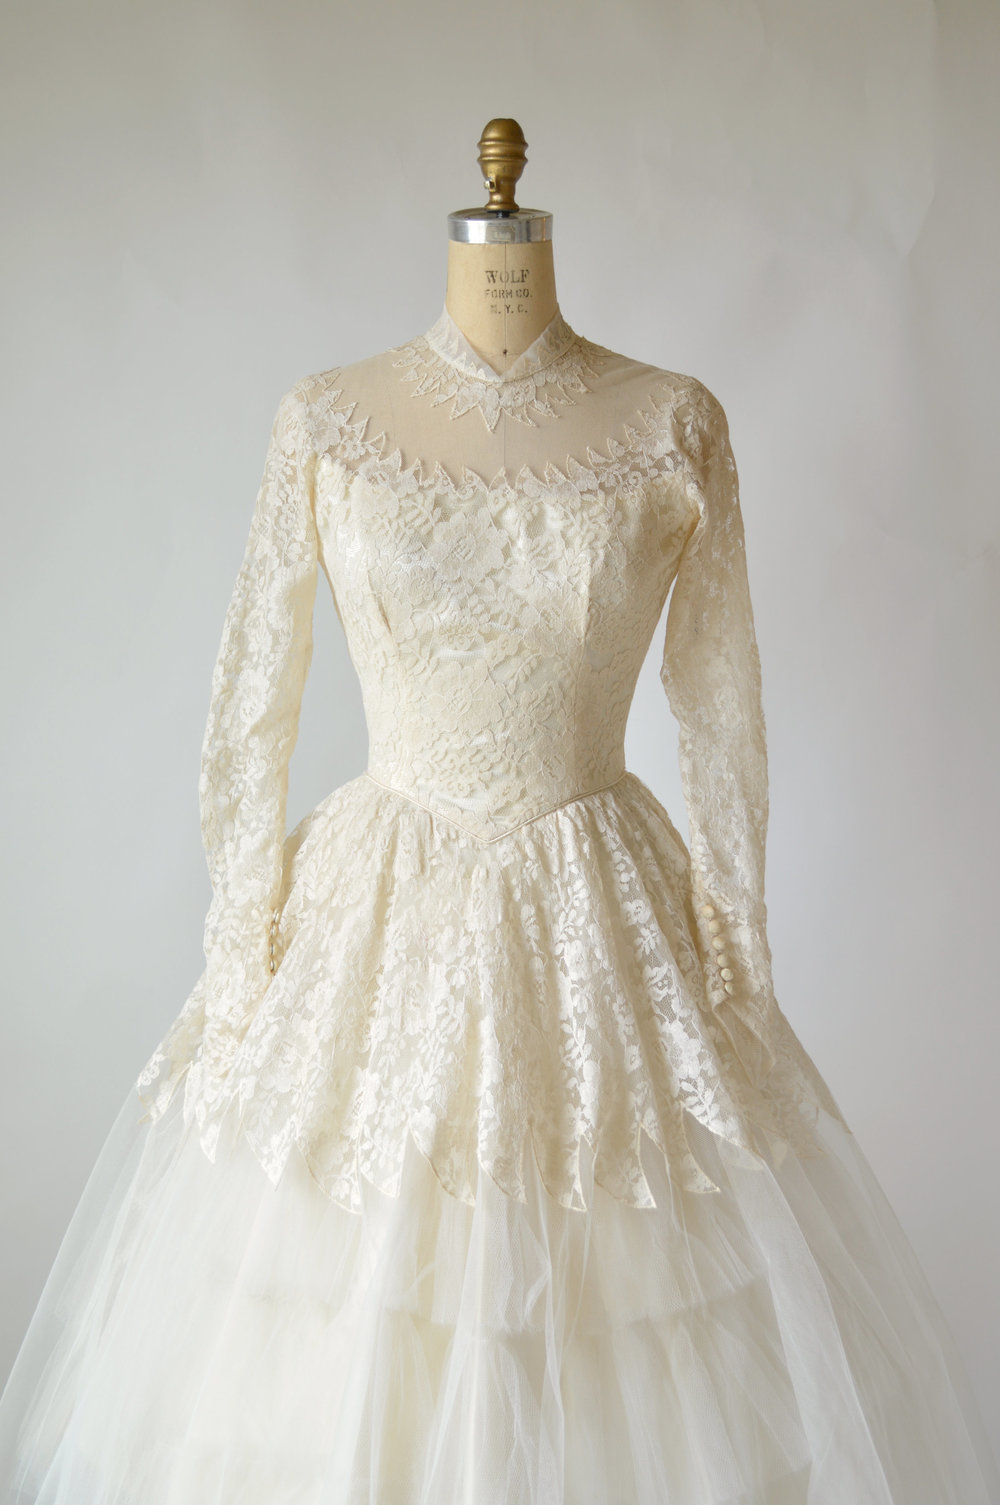 Wedding Dresses S In Austin Tx : Vintage wedding dresses clothing store